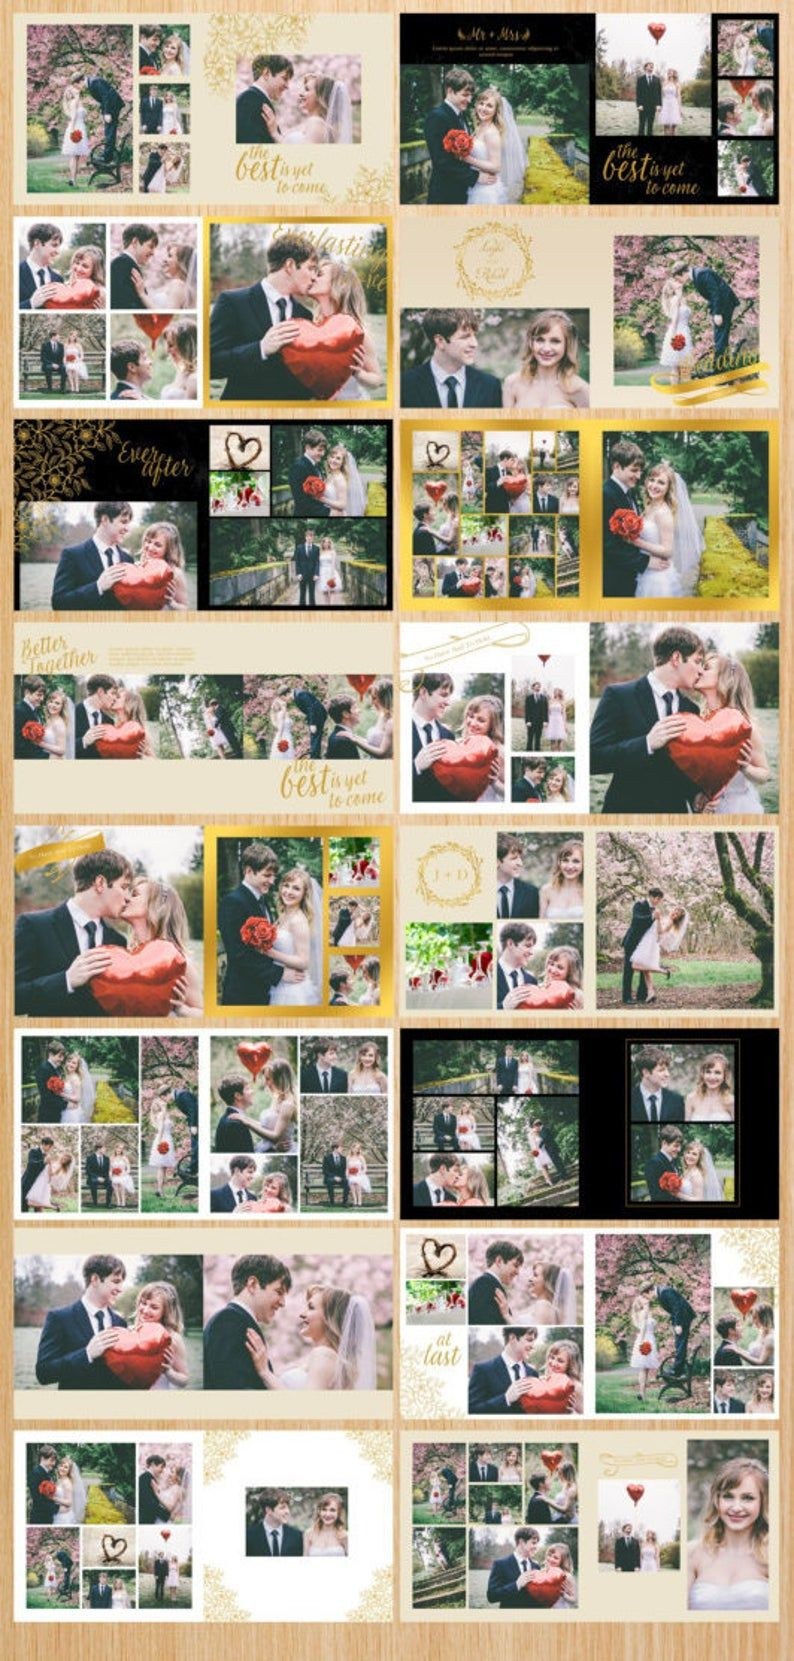 On Sale Wedding Album Template 12 X 12 Elegant Gold Etsy In 2020 Wedding Album Wedding Album Templates Wedding Album Maker